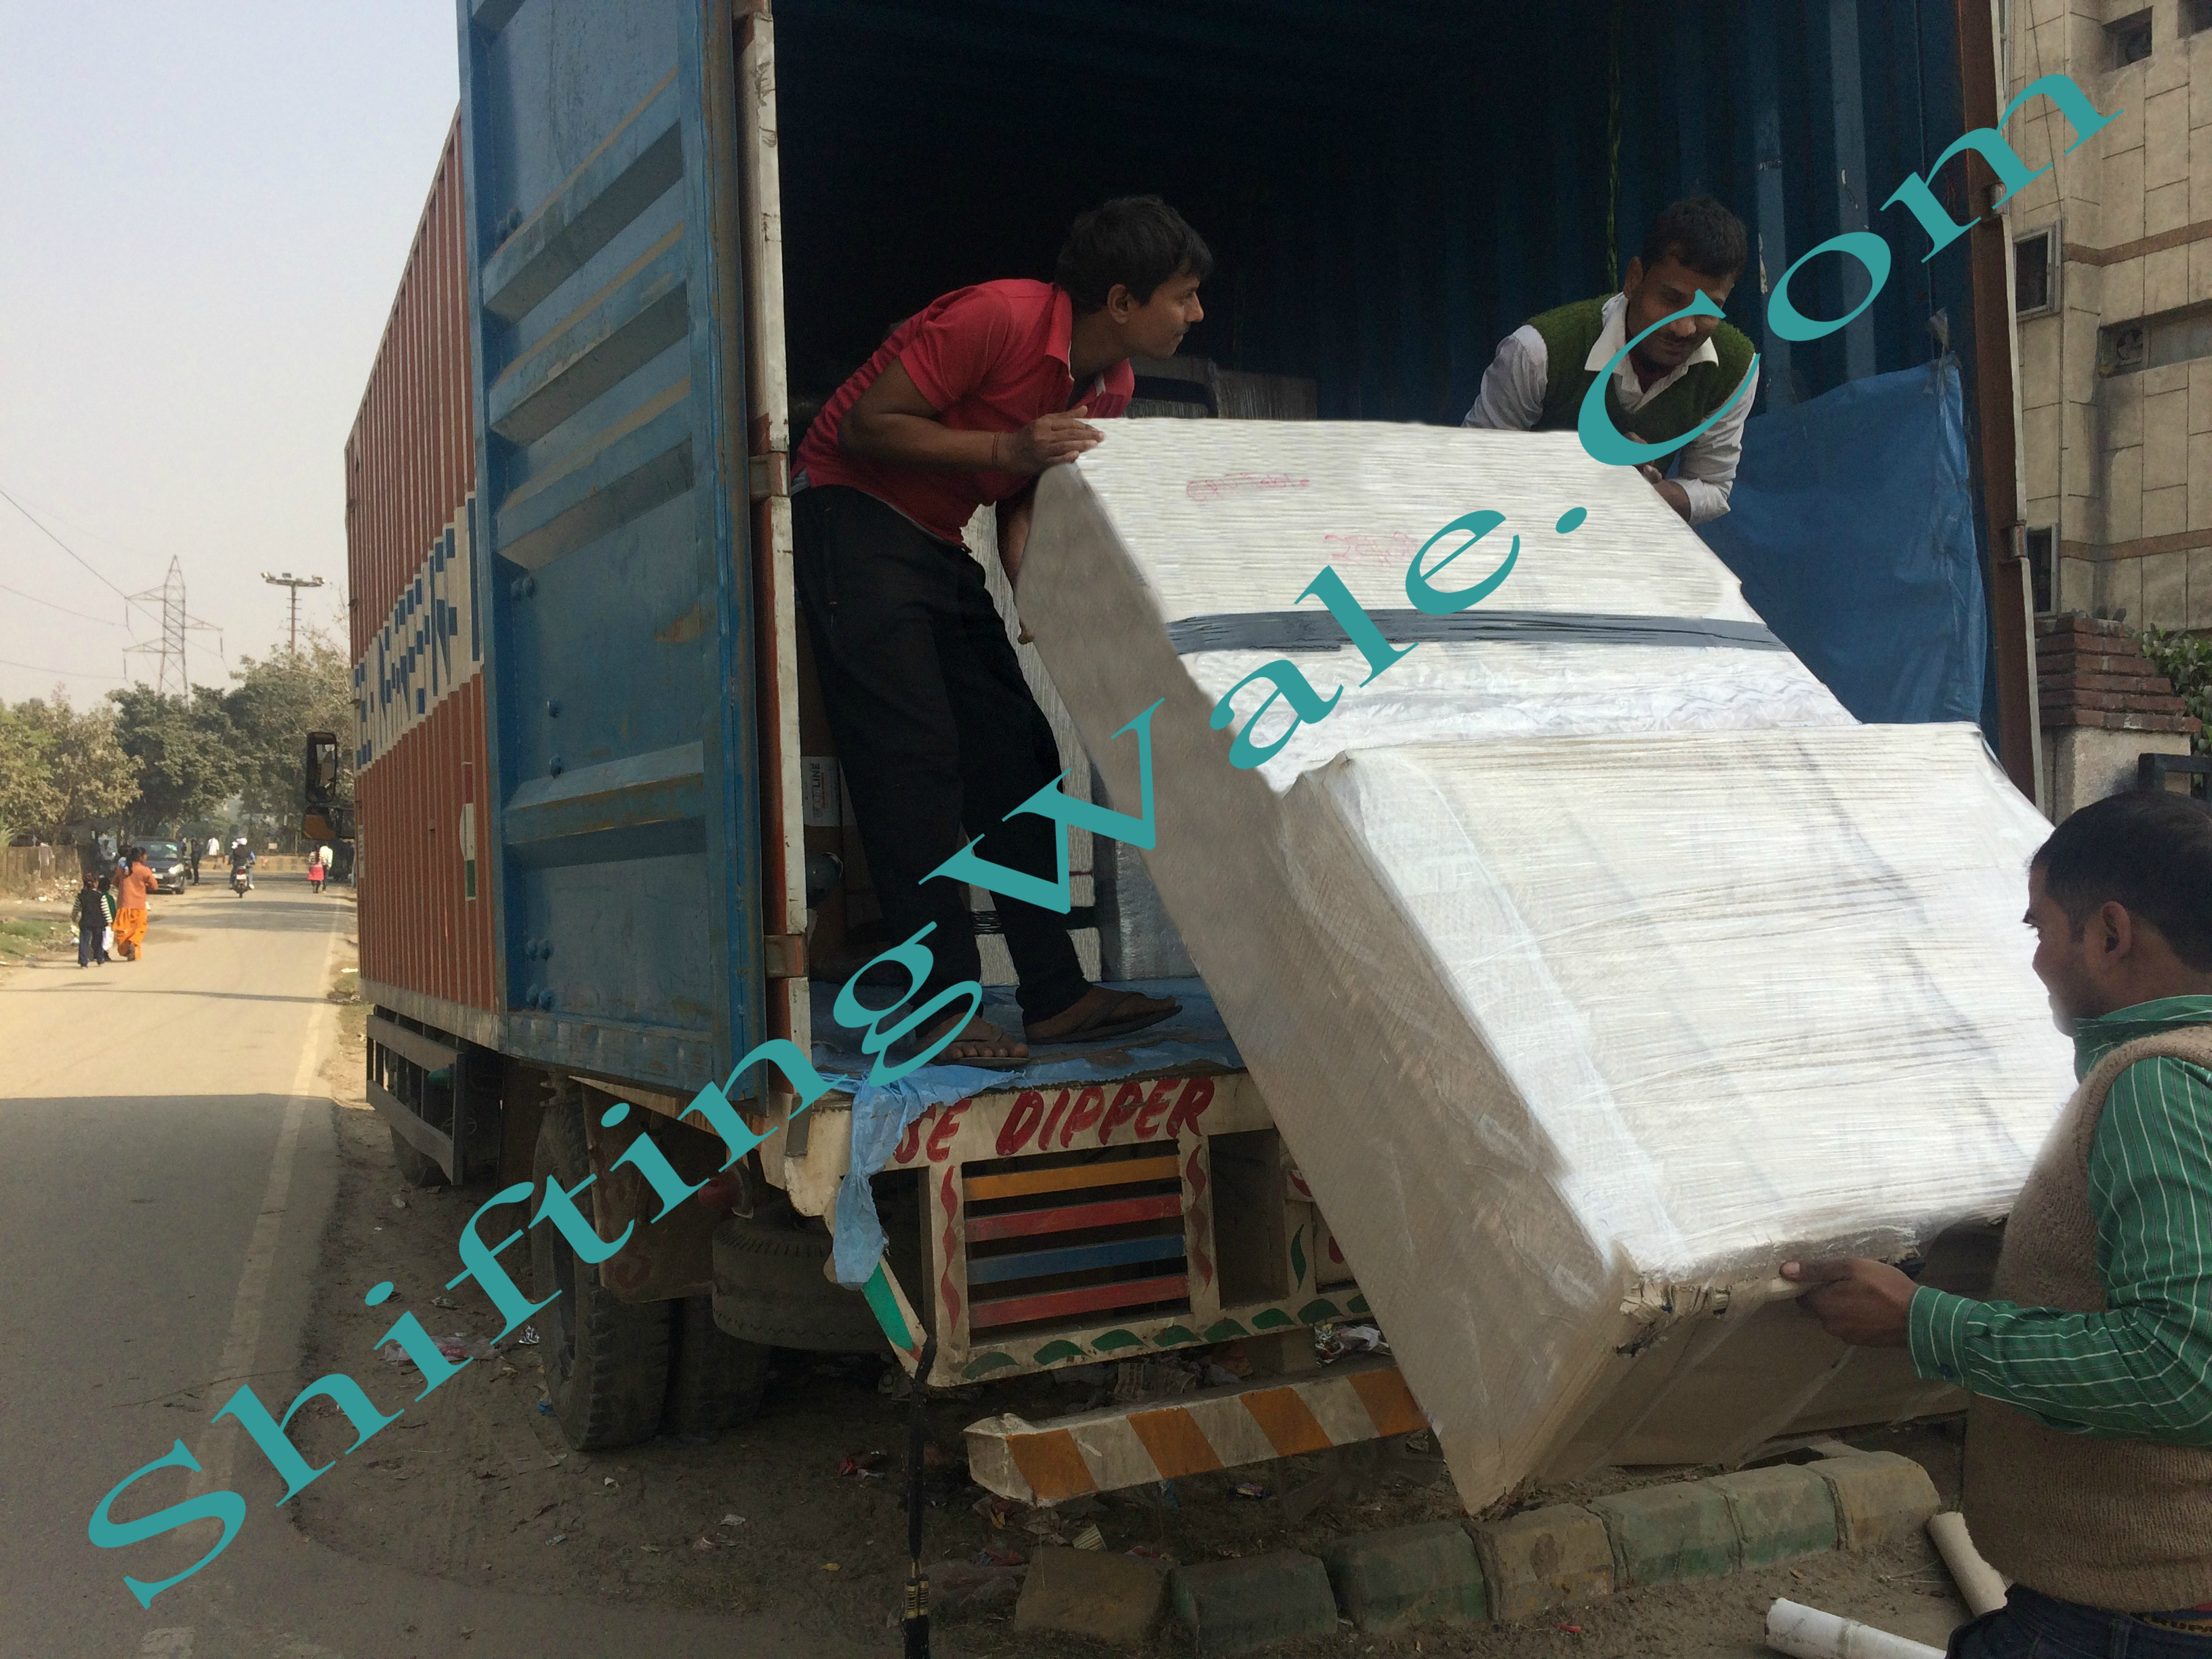 Best Movers and Packers from Delhi Gurgaon Ghaziabad Faridabad to Hyderabad Bangalore Chennai to Delhi Gurgaon Ghaziabad